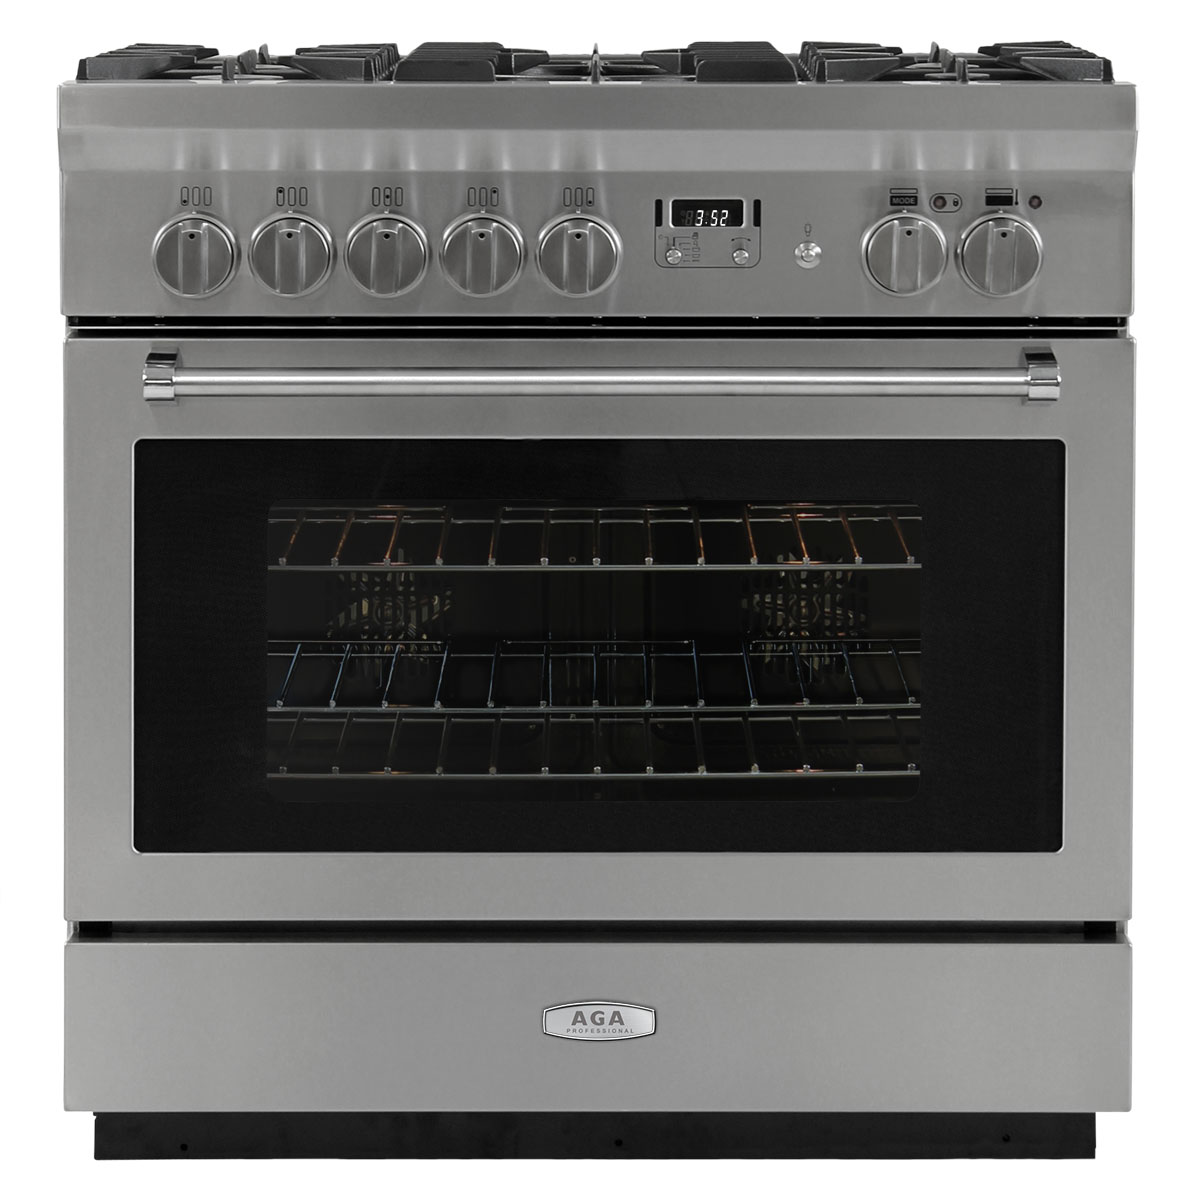 "Model: AMPRO36DF | Aga AGA Professional 36"" Dual Fuel Self-Cleaning Range"